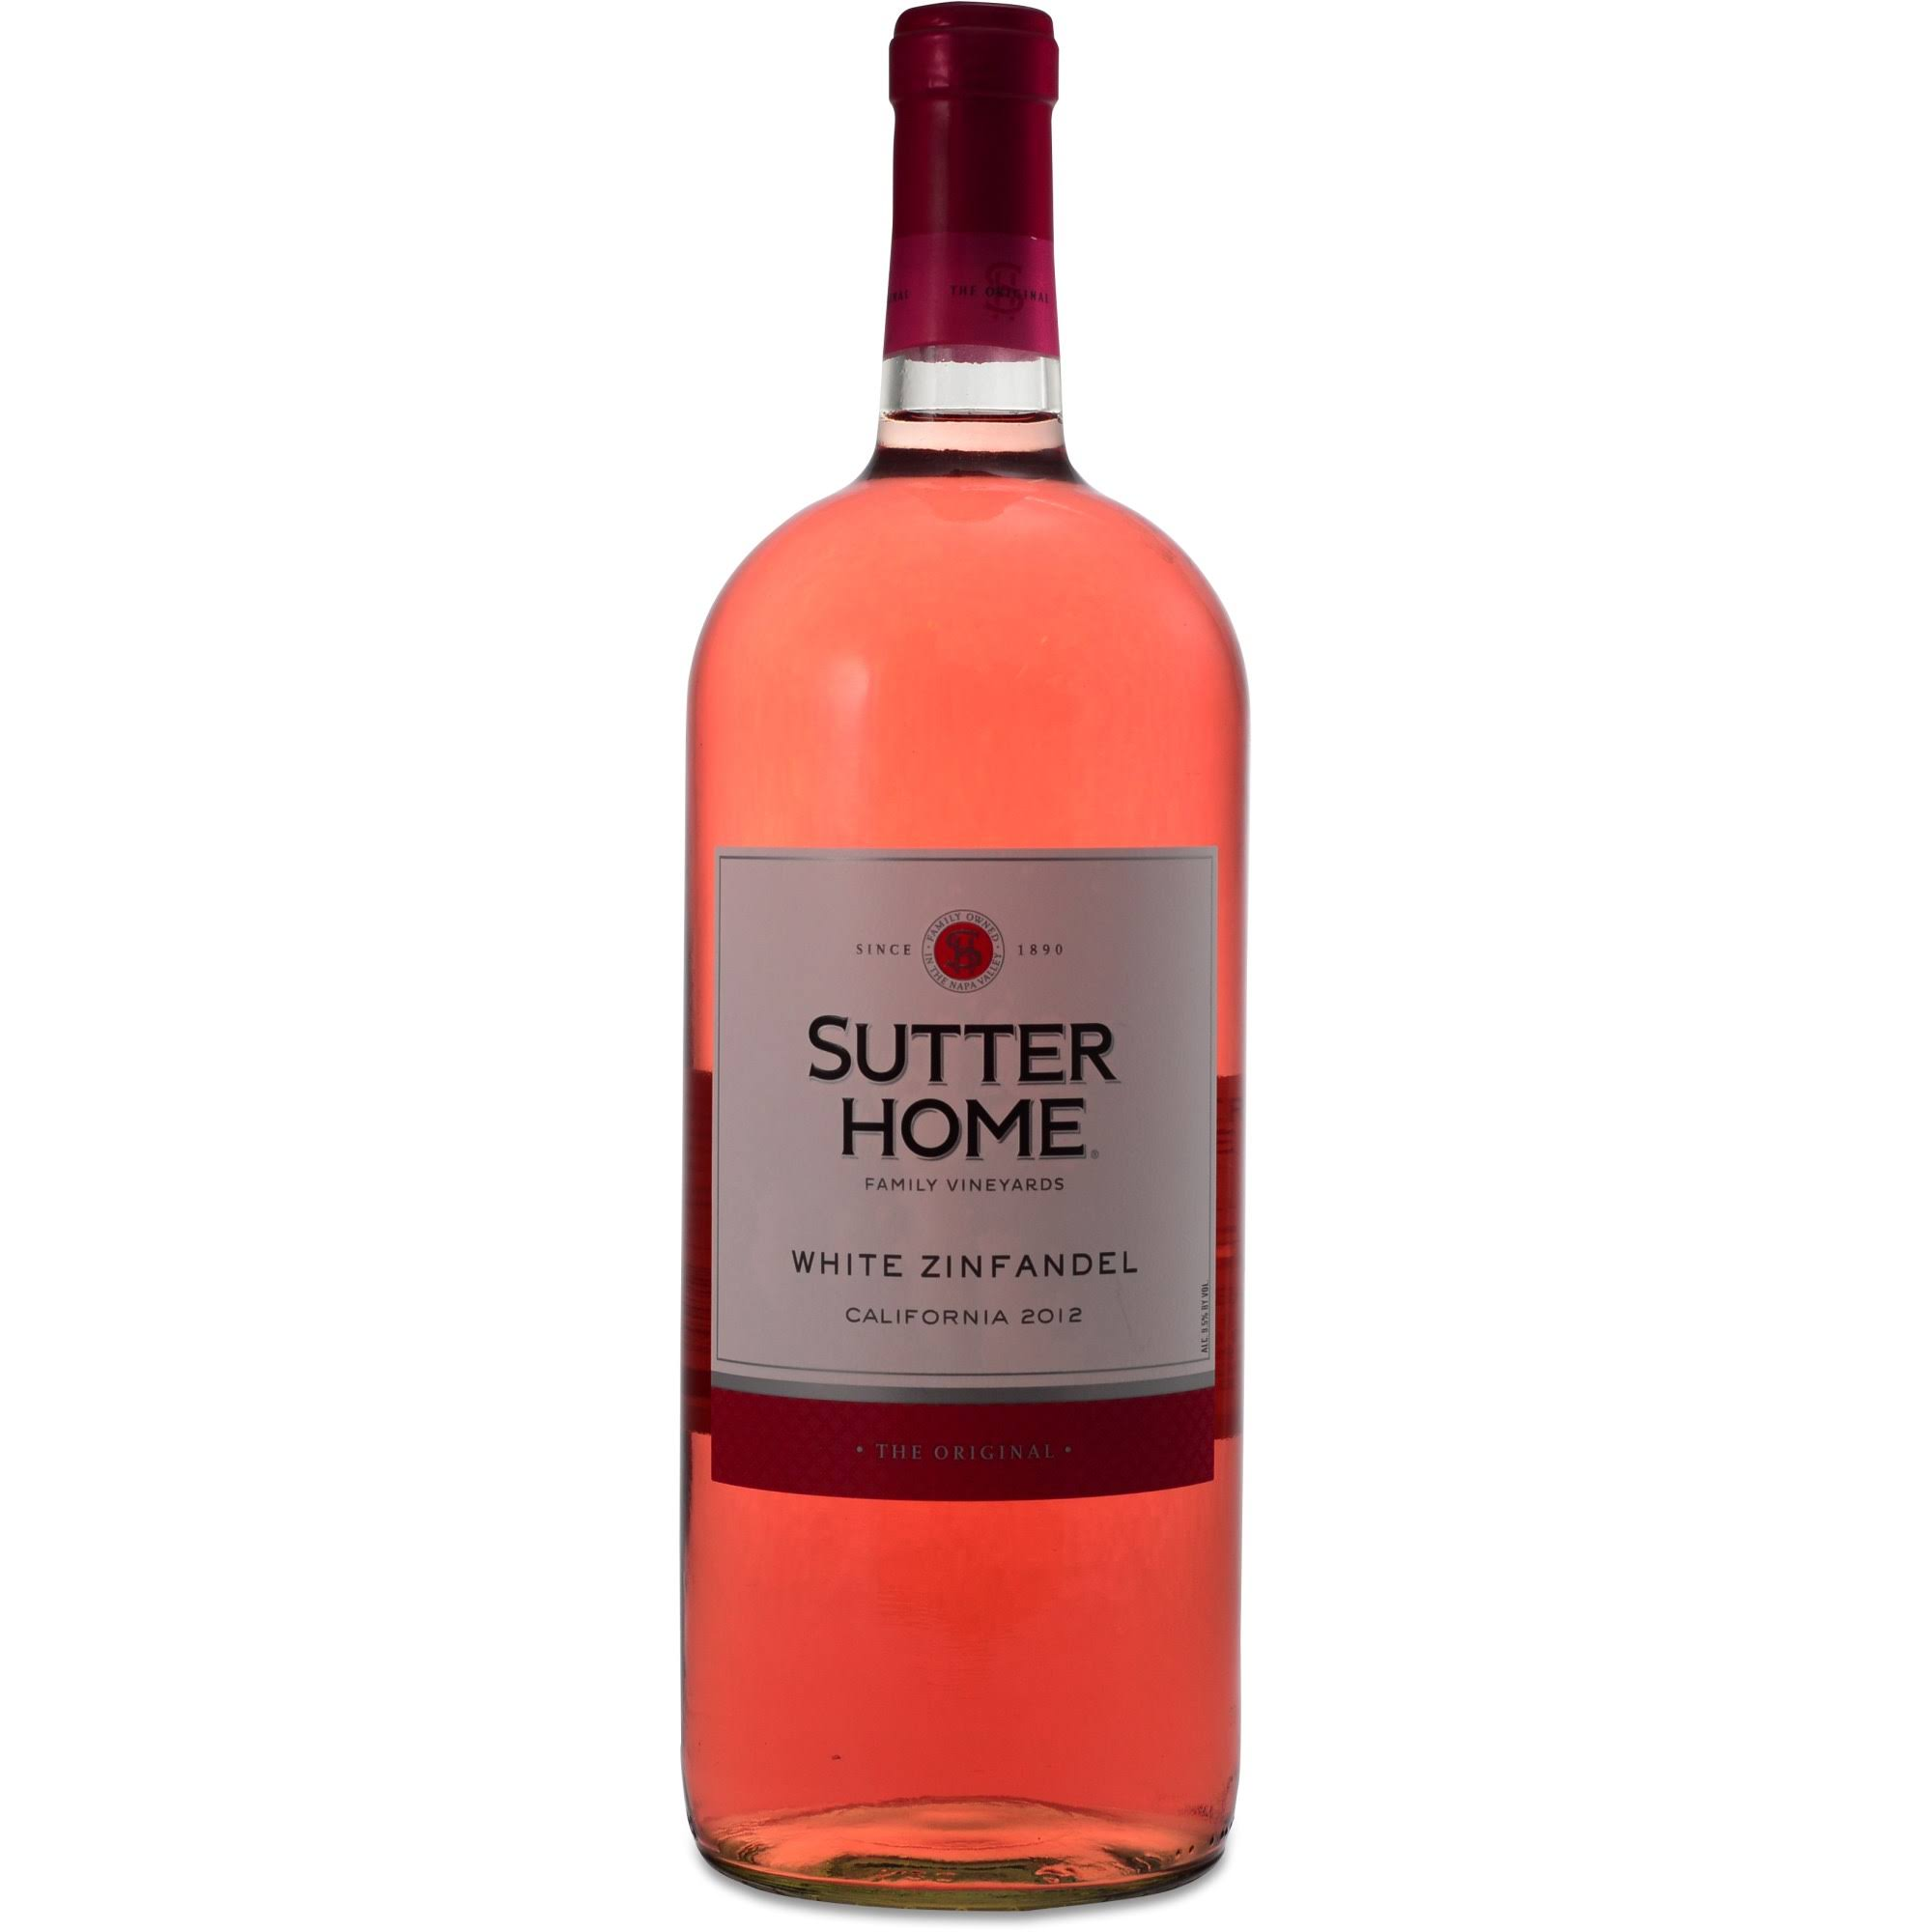 Sutter Home White Zinfandel Wine - 1.5l